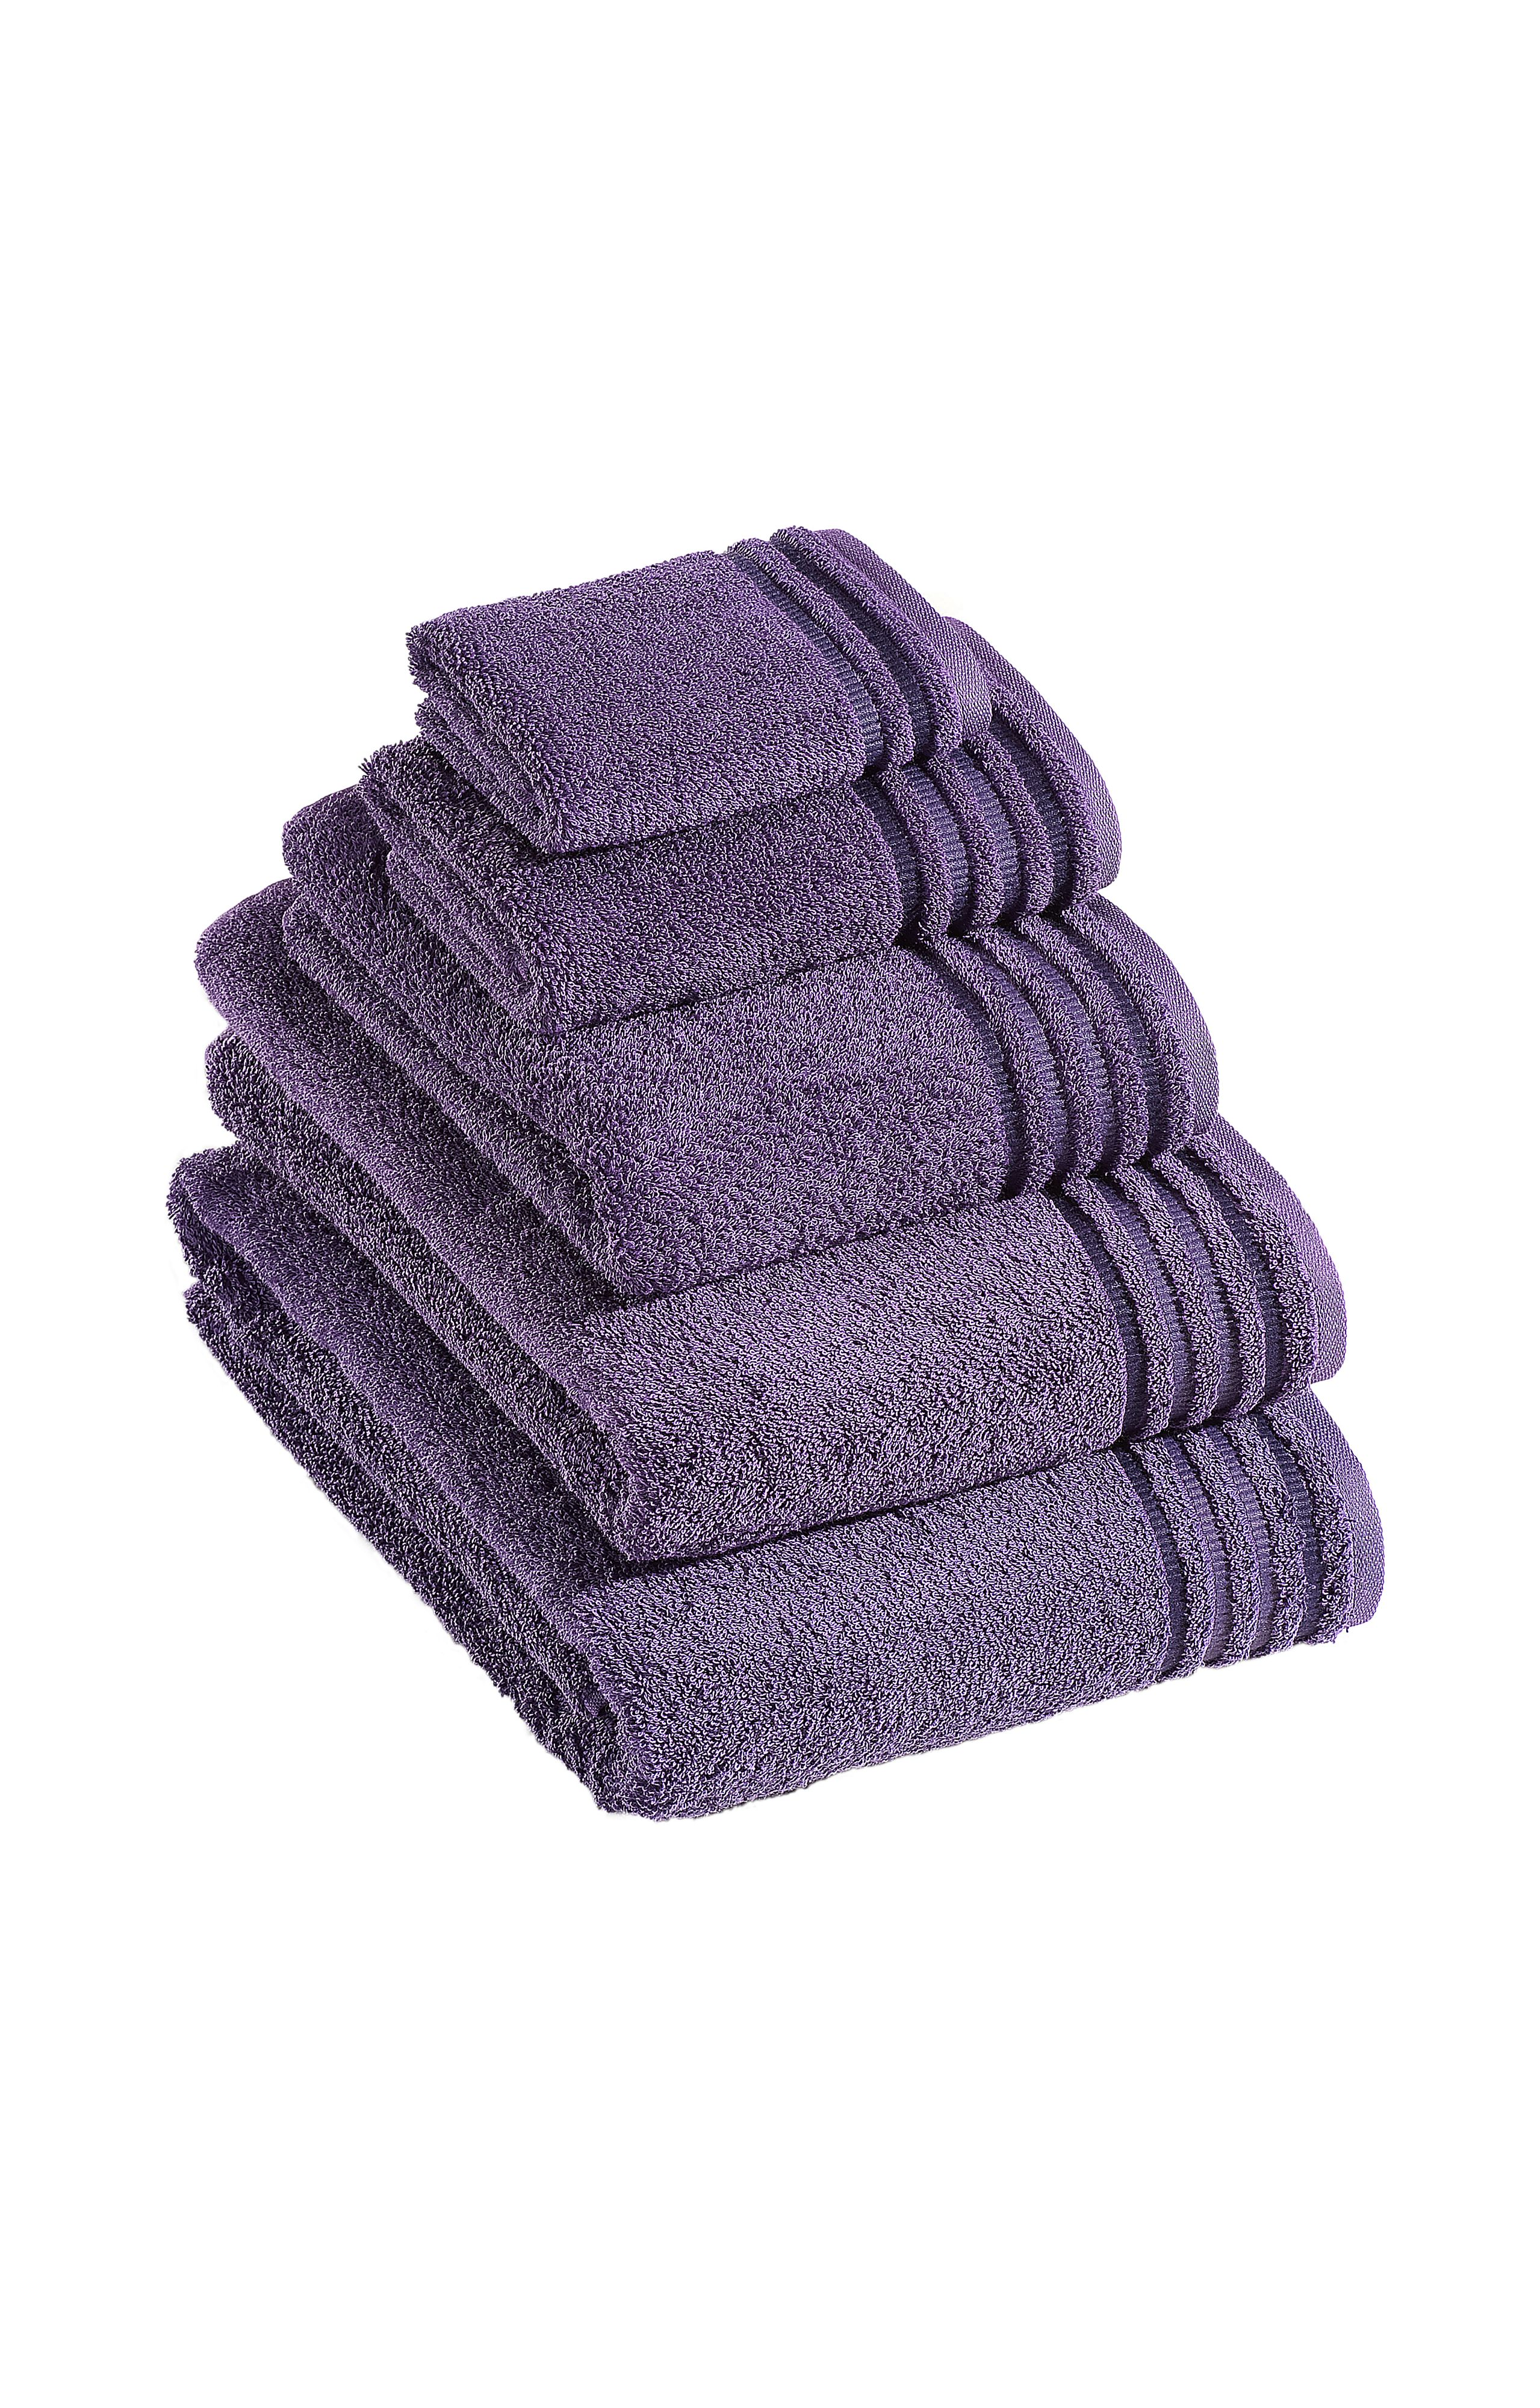 De Luxe towel range in dark tulip